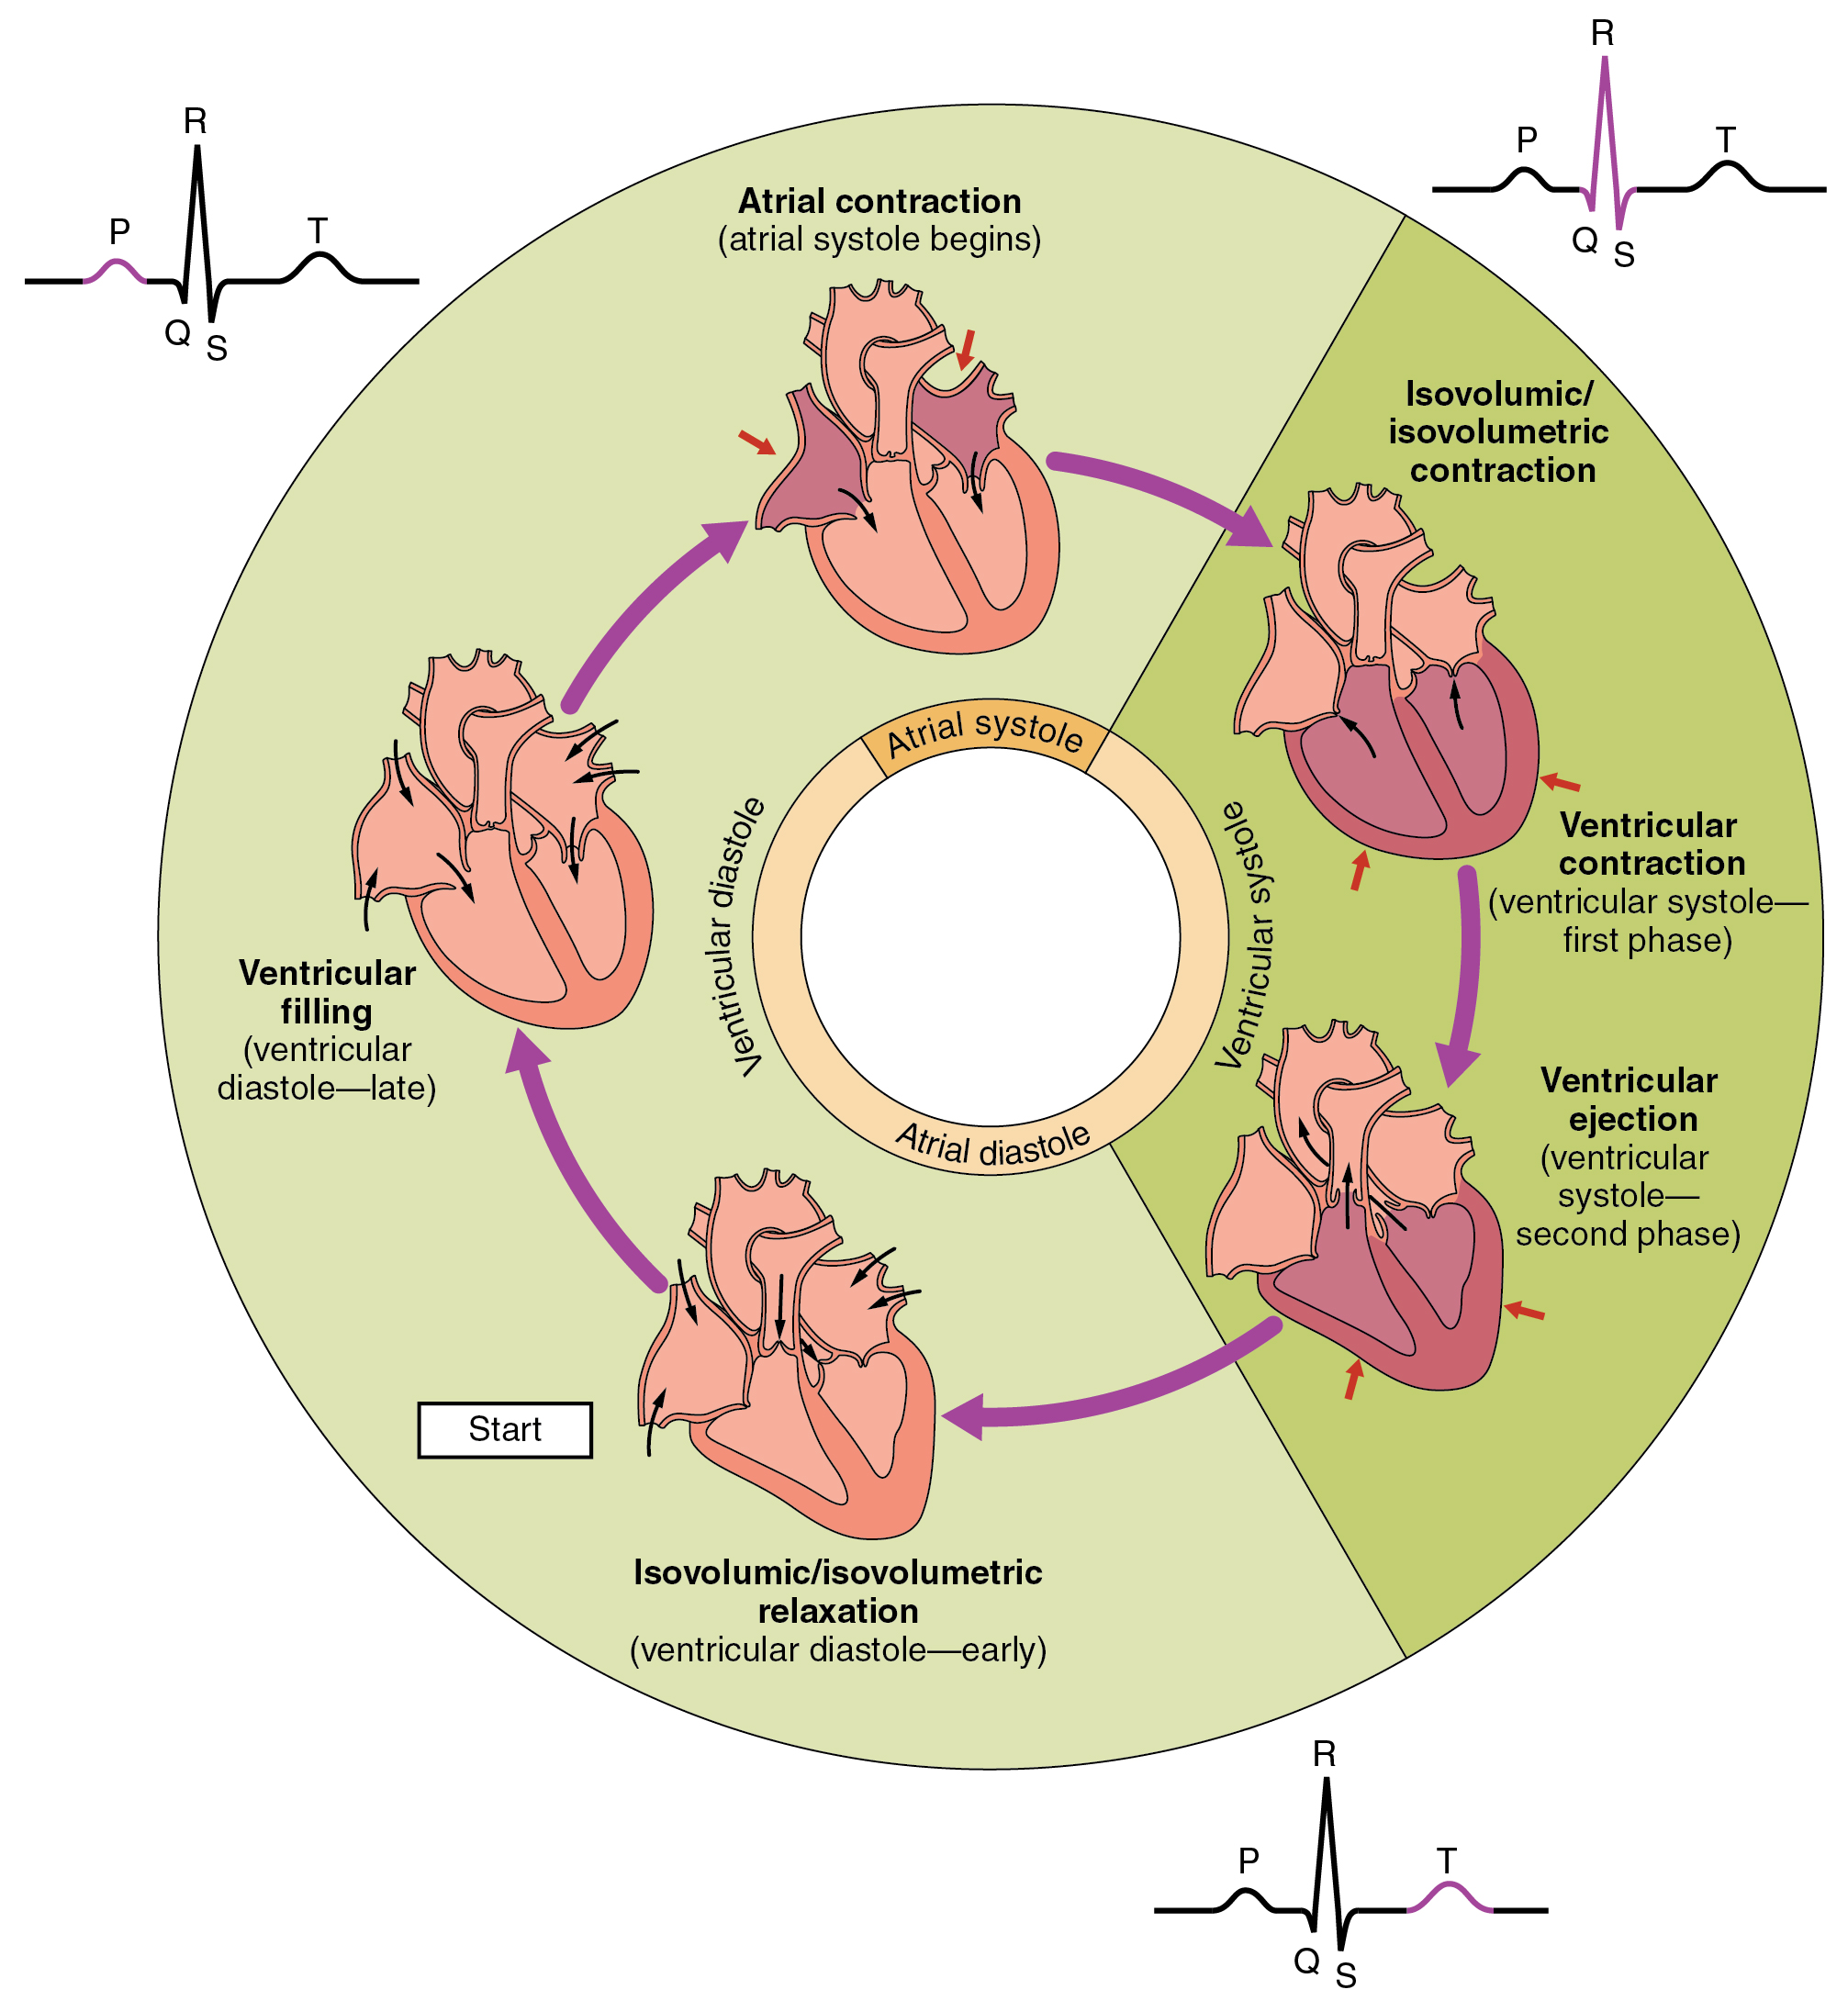 Cardiac Cycle - Anatomy & Physiology - OpenStax CNX